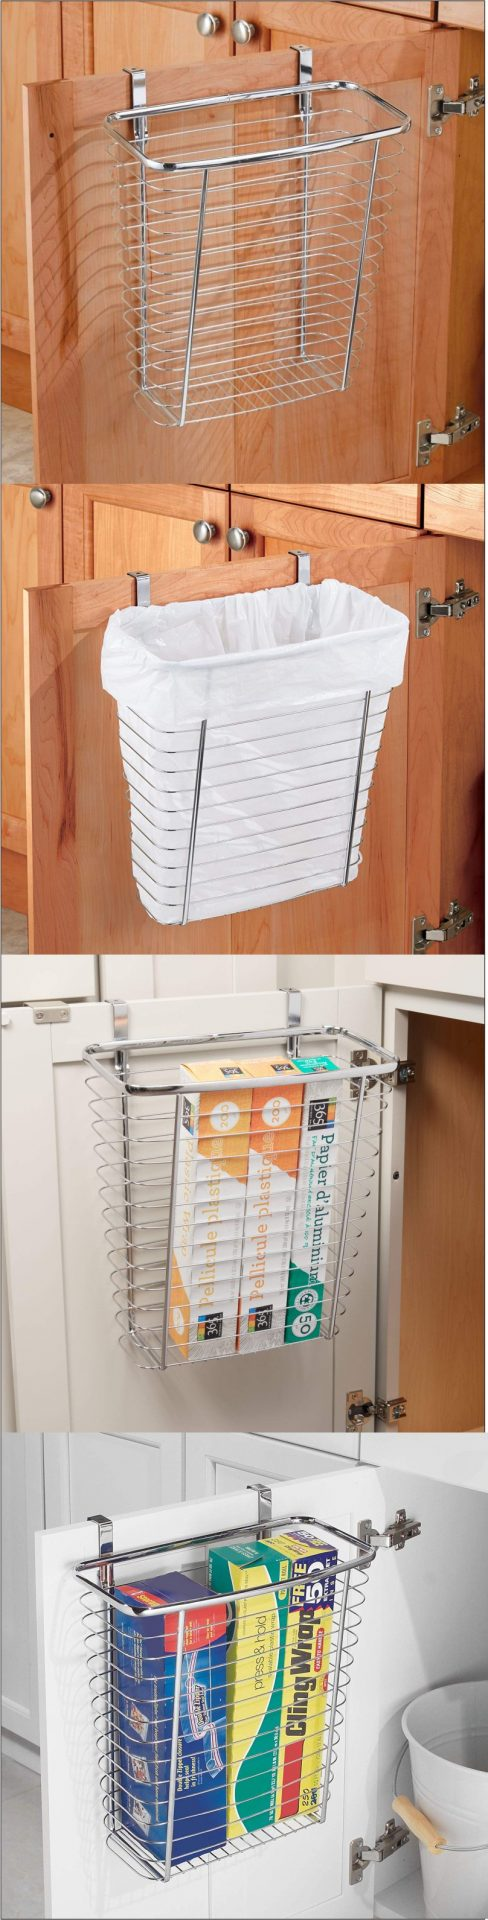 rv storage organization ideas